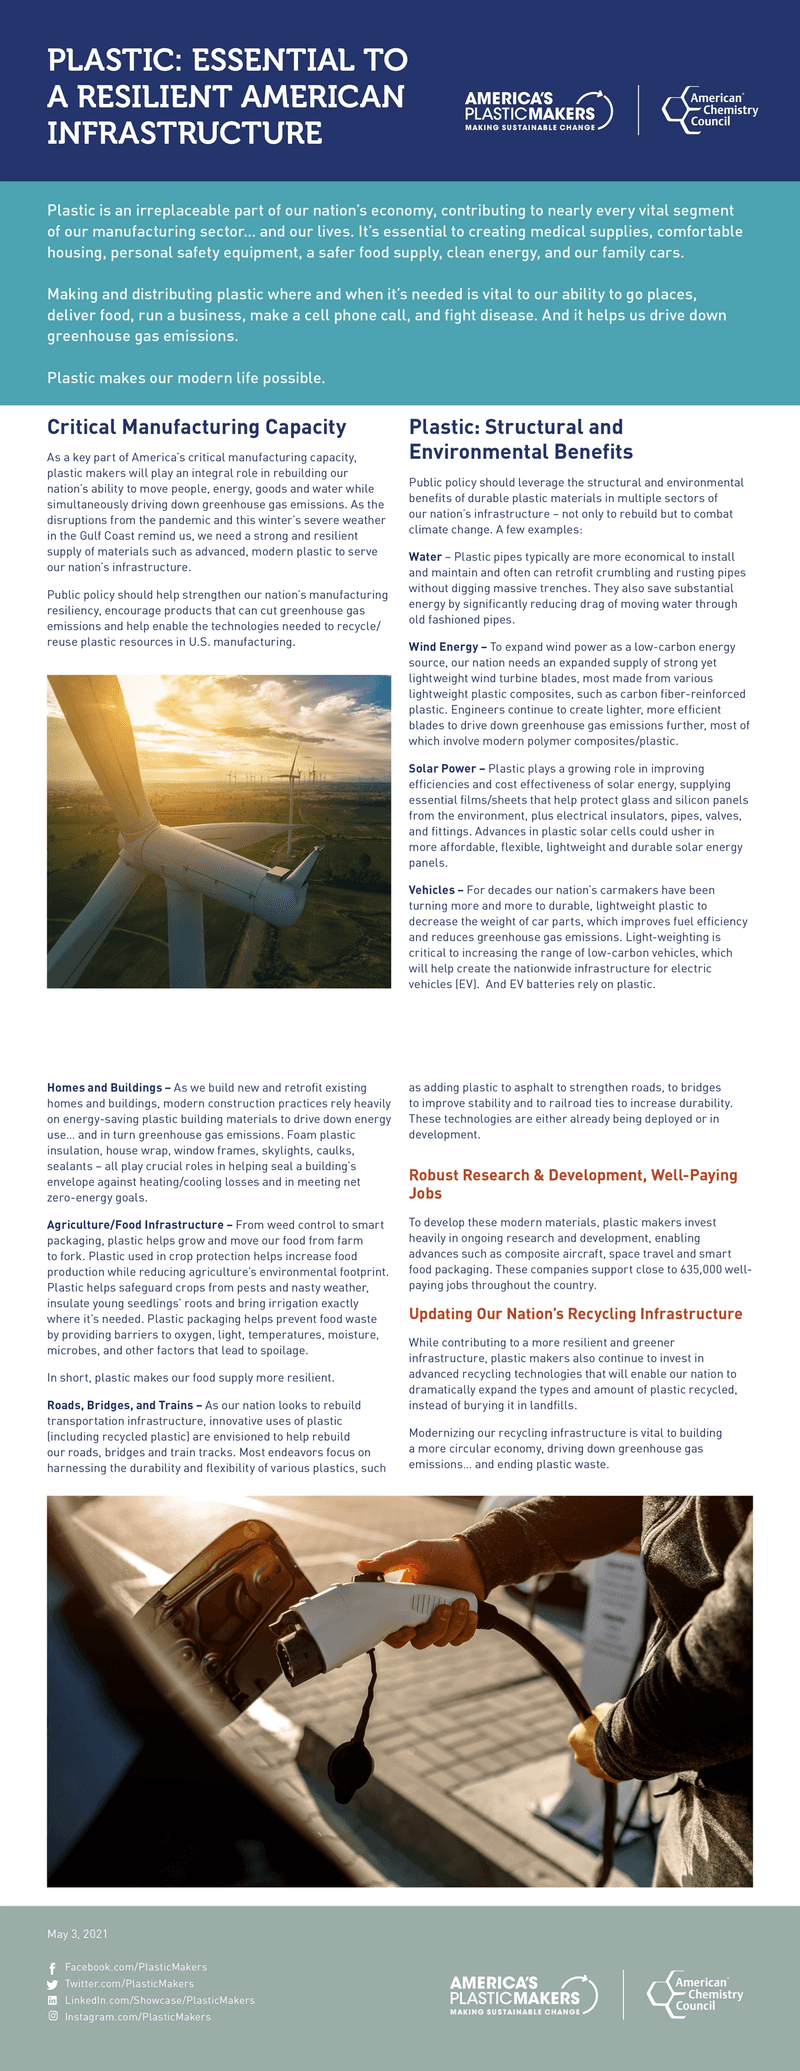 Essential to a Resilient American Infrastructure Fact Sheet